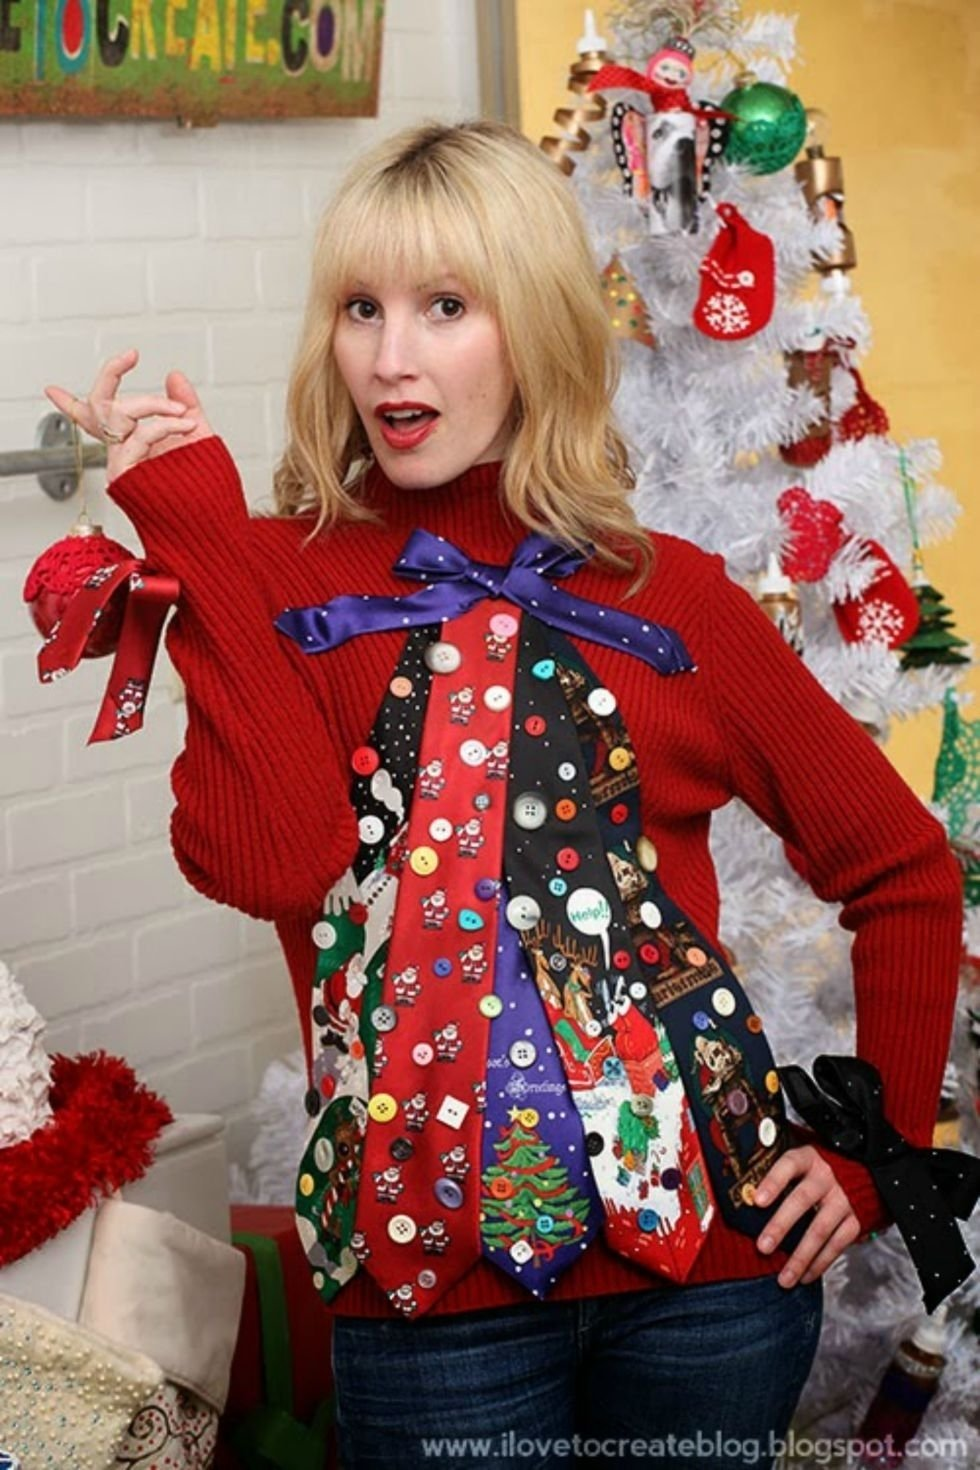 10 Wonderful How To Make An Ugly Christmas Sweater Ideas 23 ugly christmas sweater ideas to buy and diy tacky christmas 5